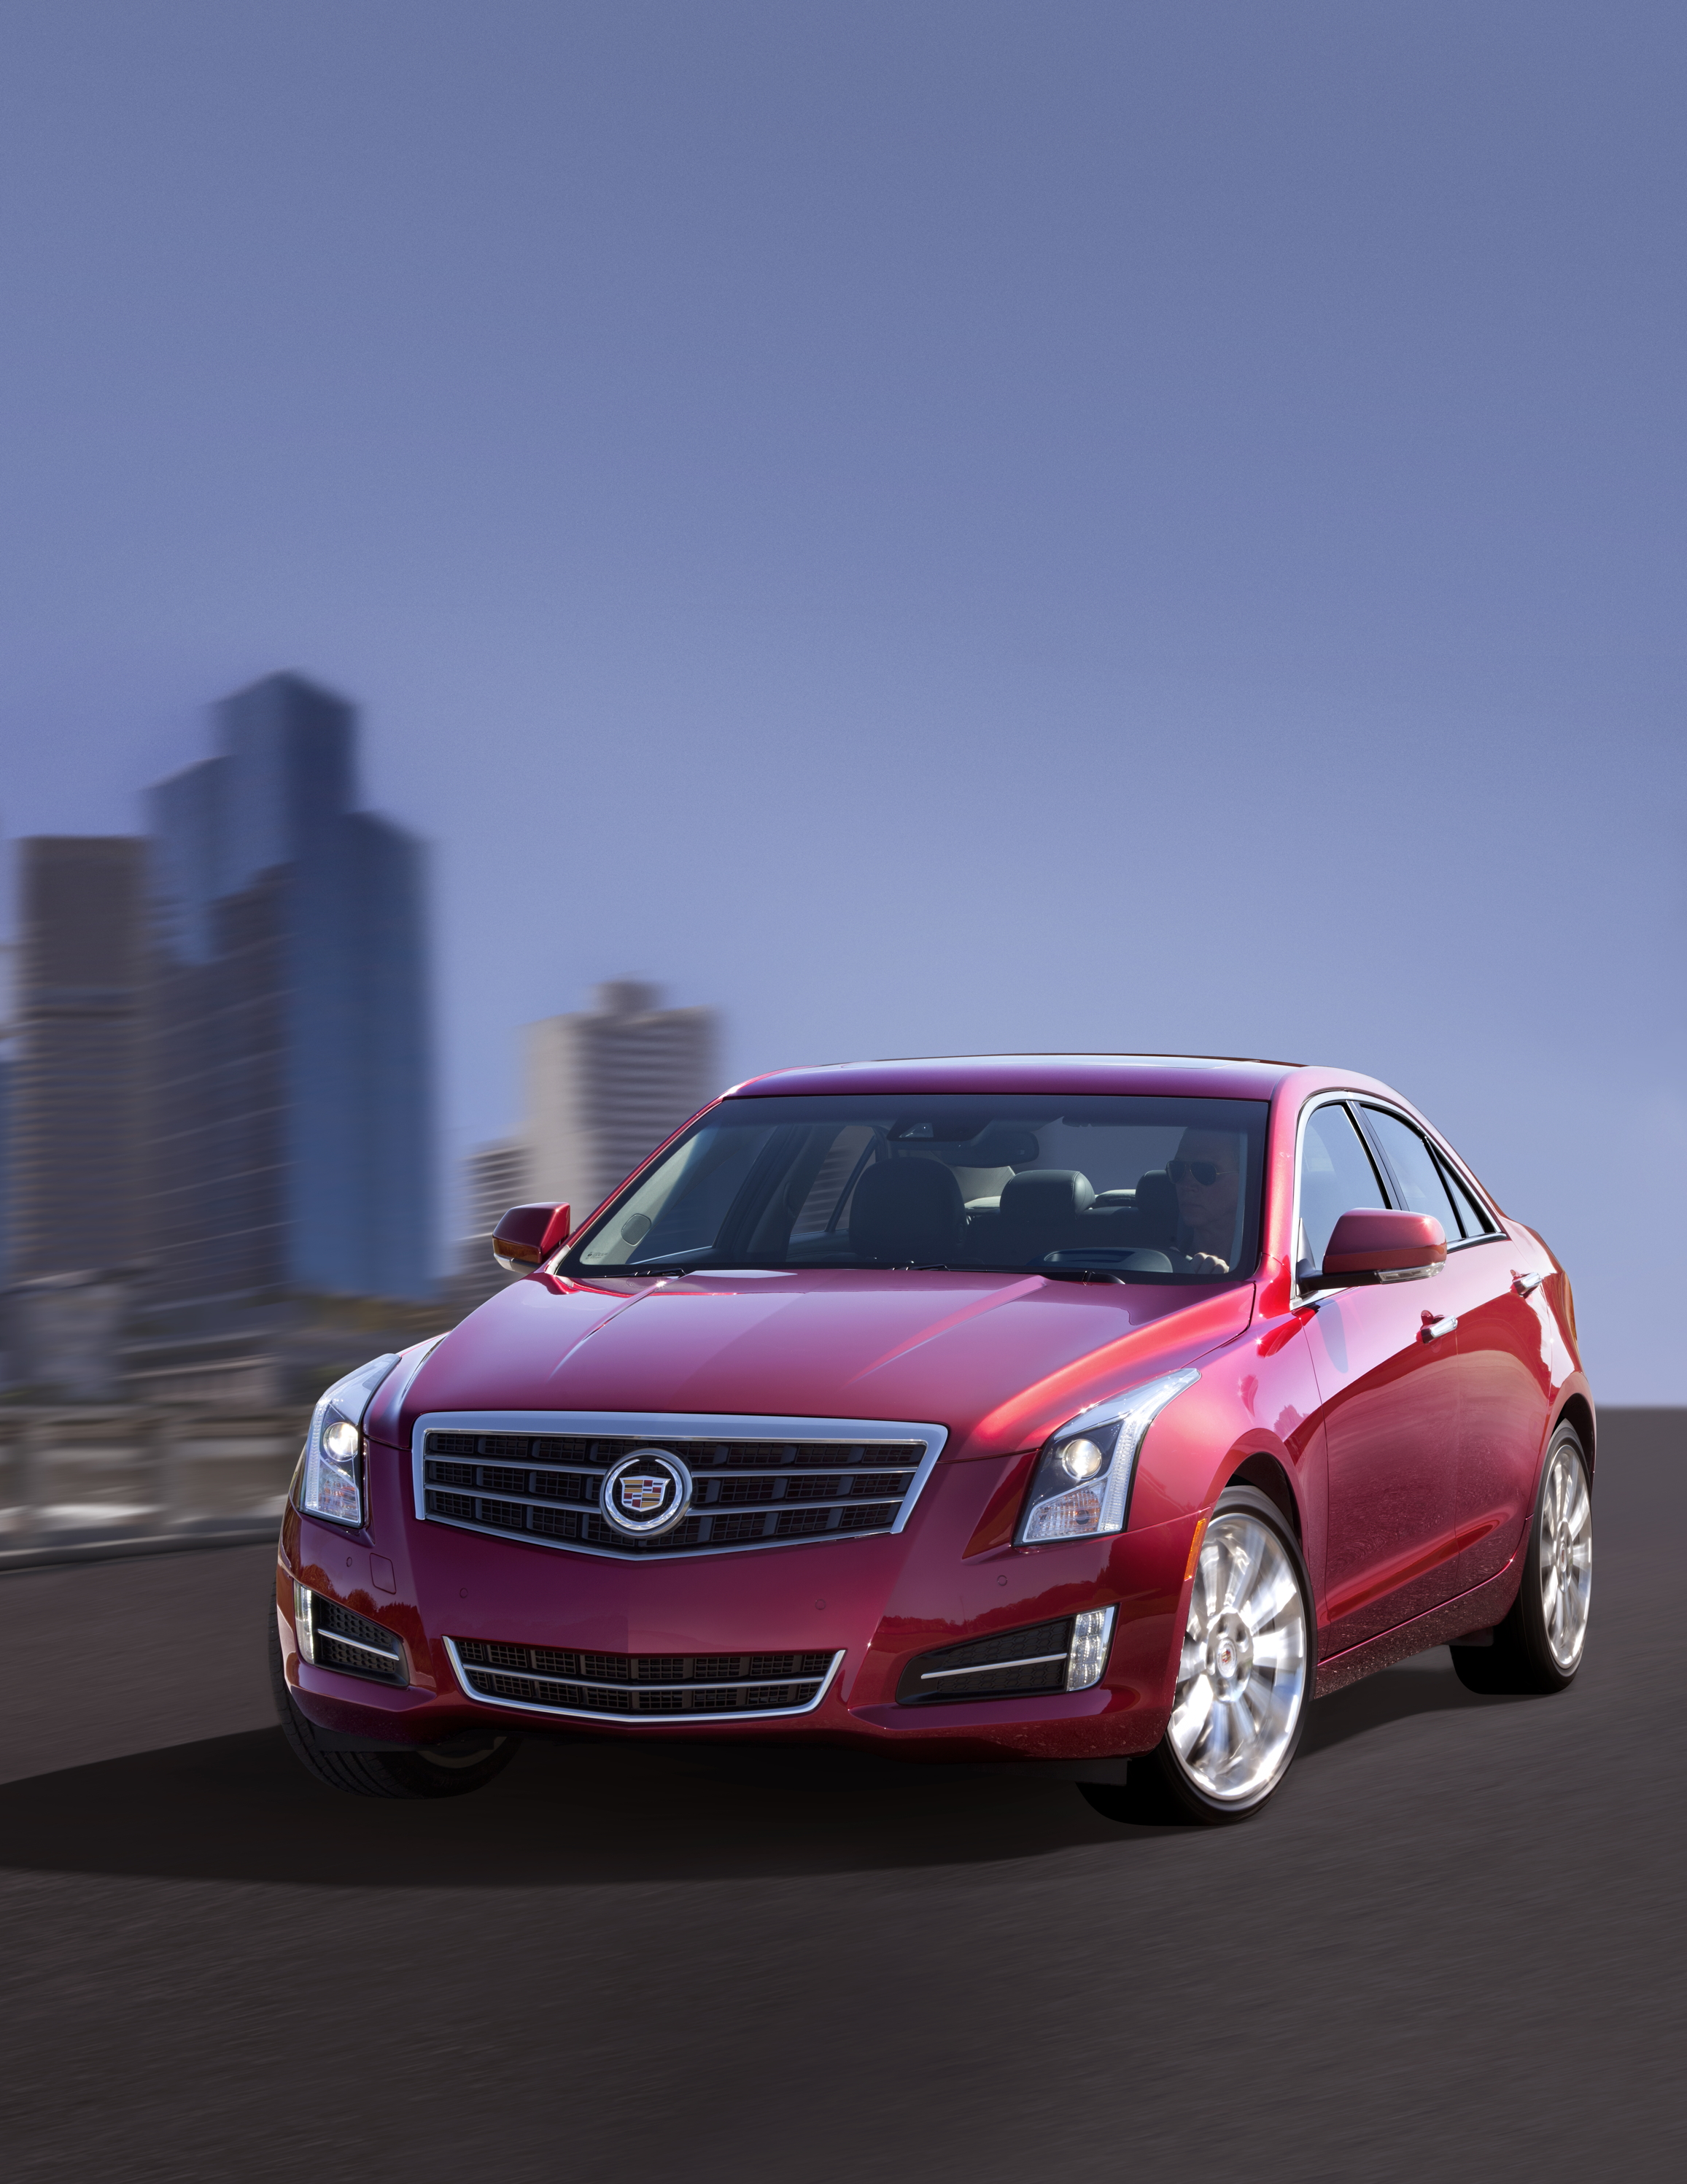 detroit 2012 gm announces 2013 cadillac ats road reality. Black Bedroom Furniture Sets. Home Design Ideas